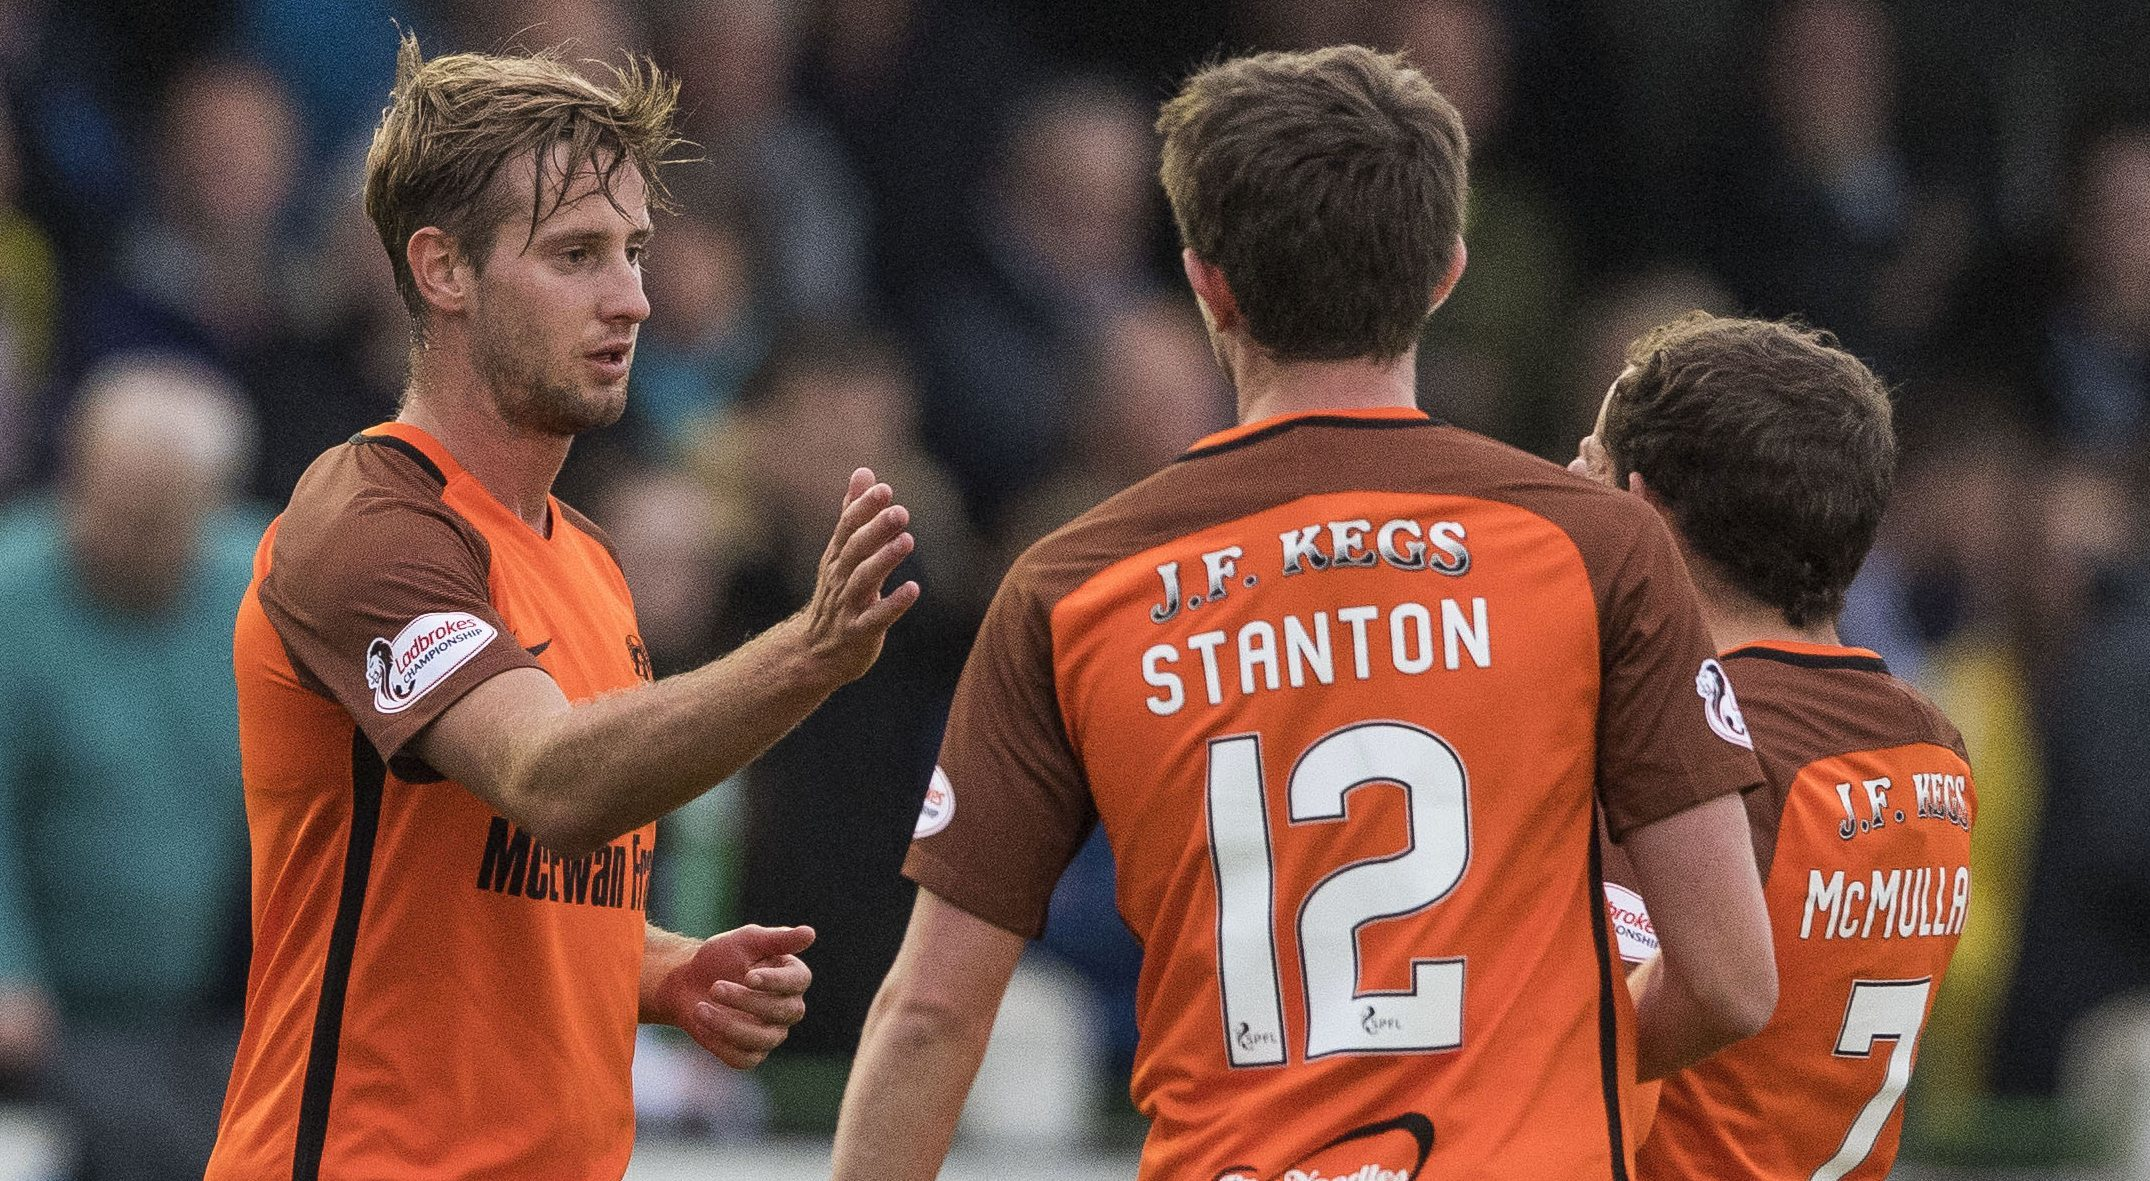 Billy King celebrates his goal against Buckie with his team-mates.